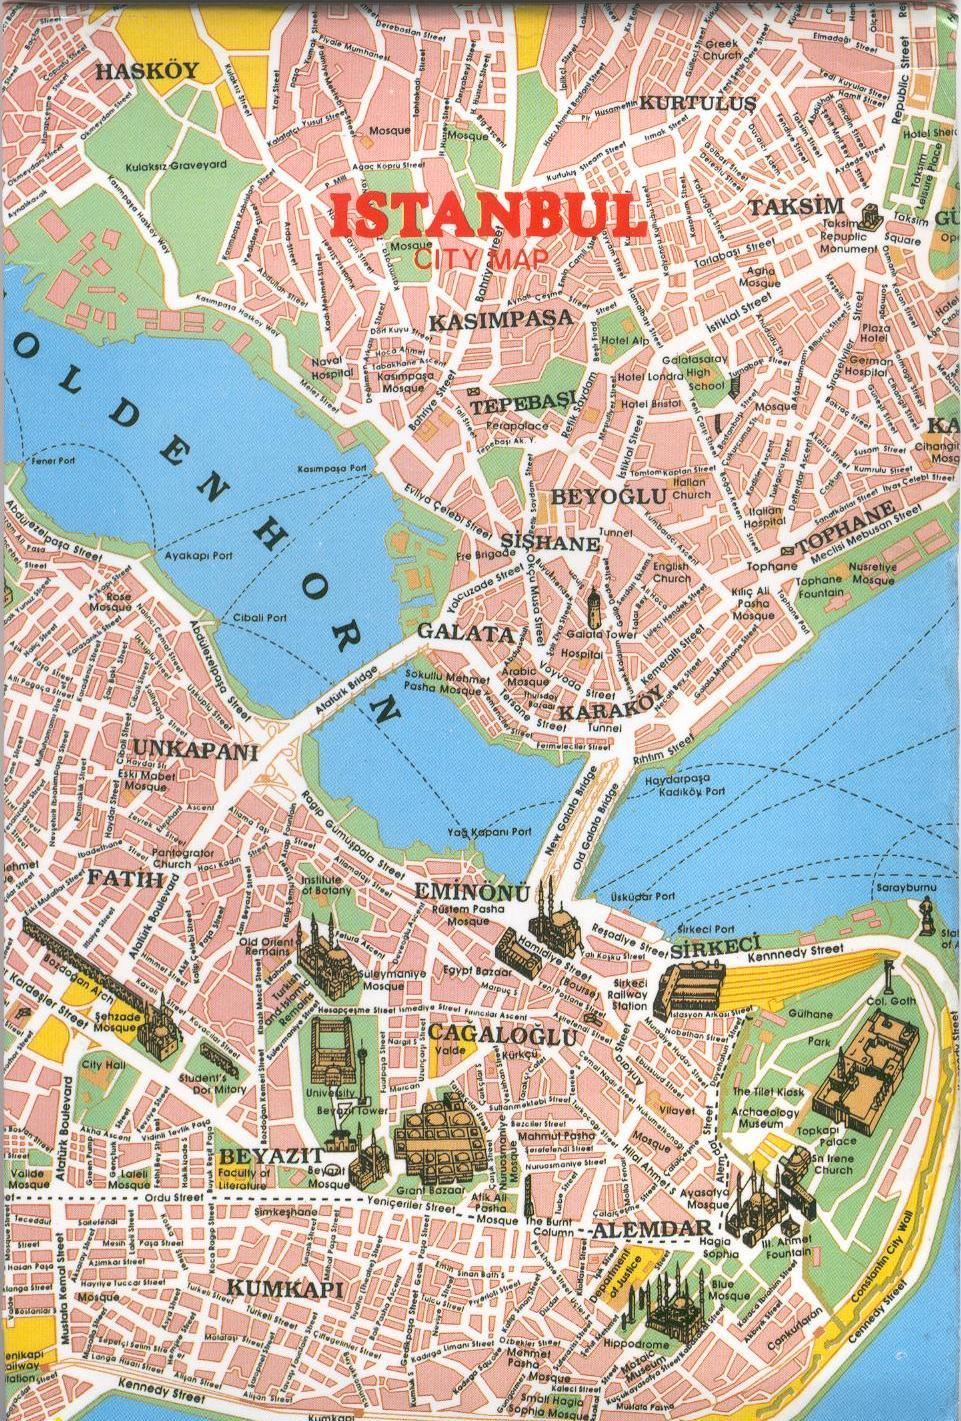 ISTANBUL MAP – Istanbul Tourist Map